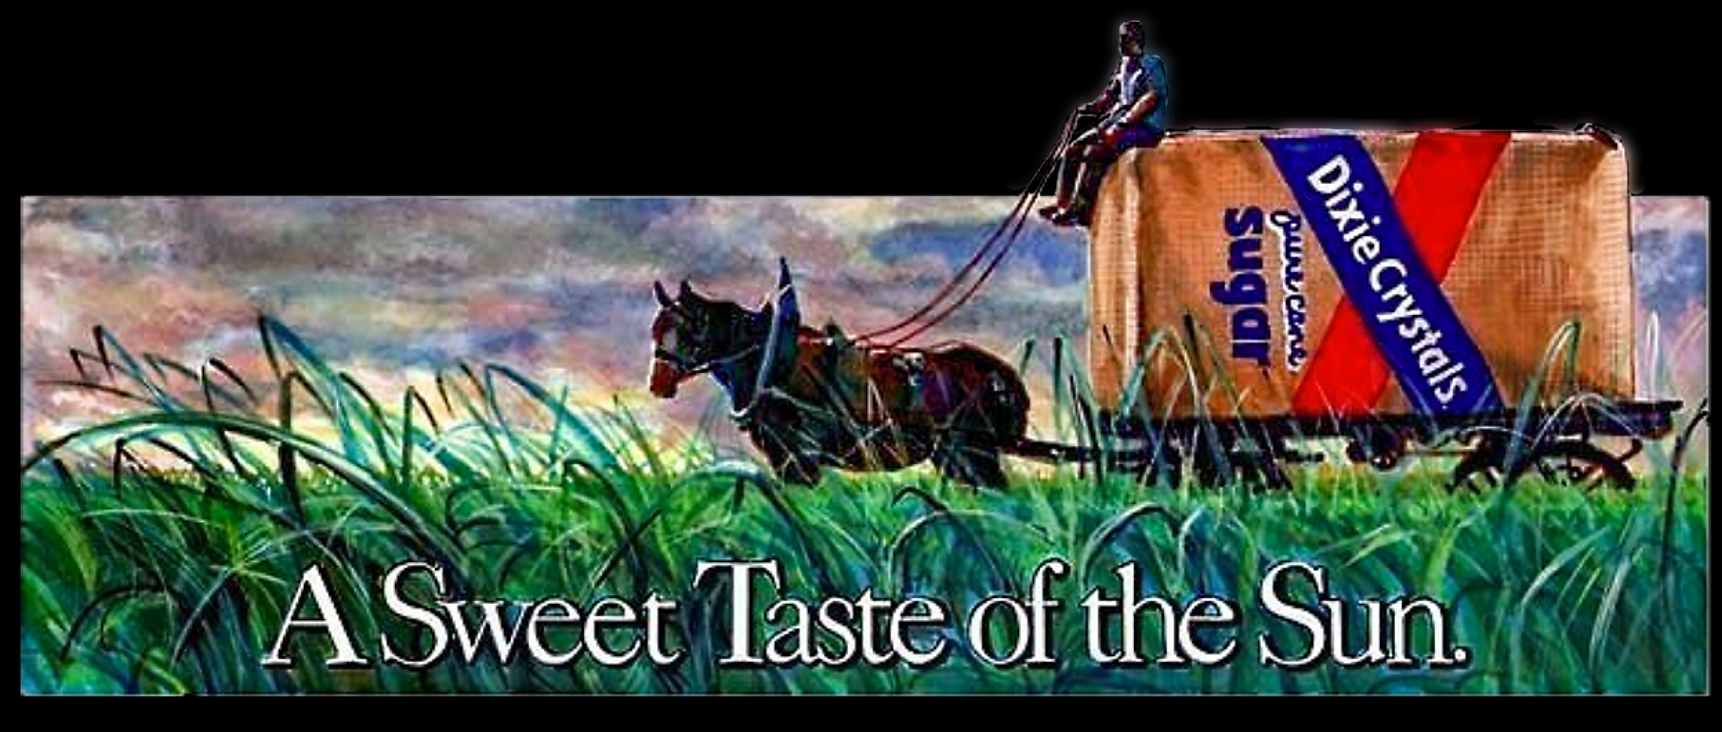 """Outdoor Advertising- """"A Sweet Taste of the Sun"""" • The Savannah Food Company. Designed & Illustrated marker comp for this 14' by 48' billboard. © KT"""